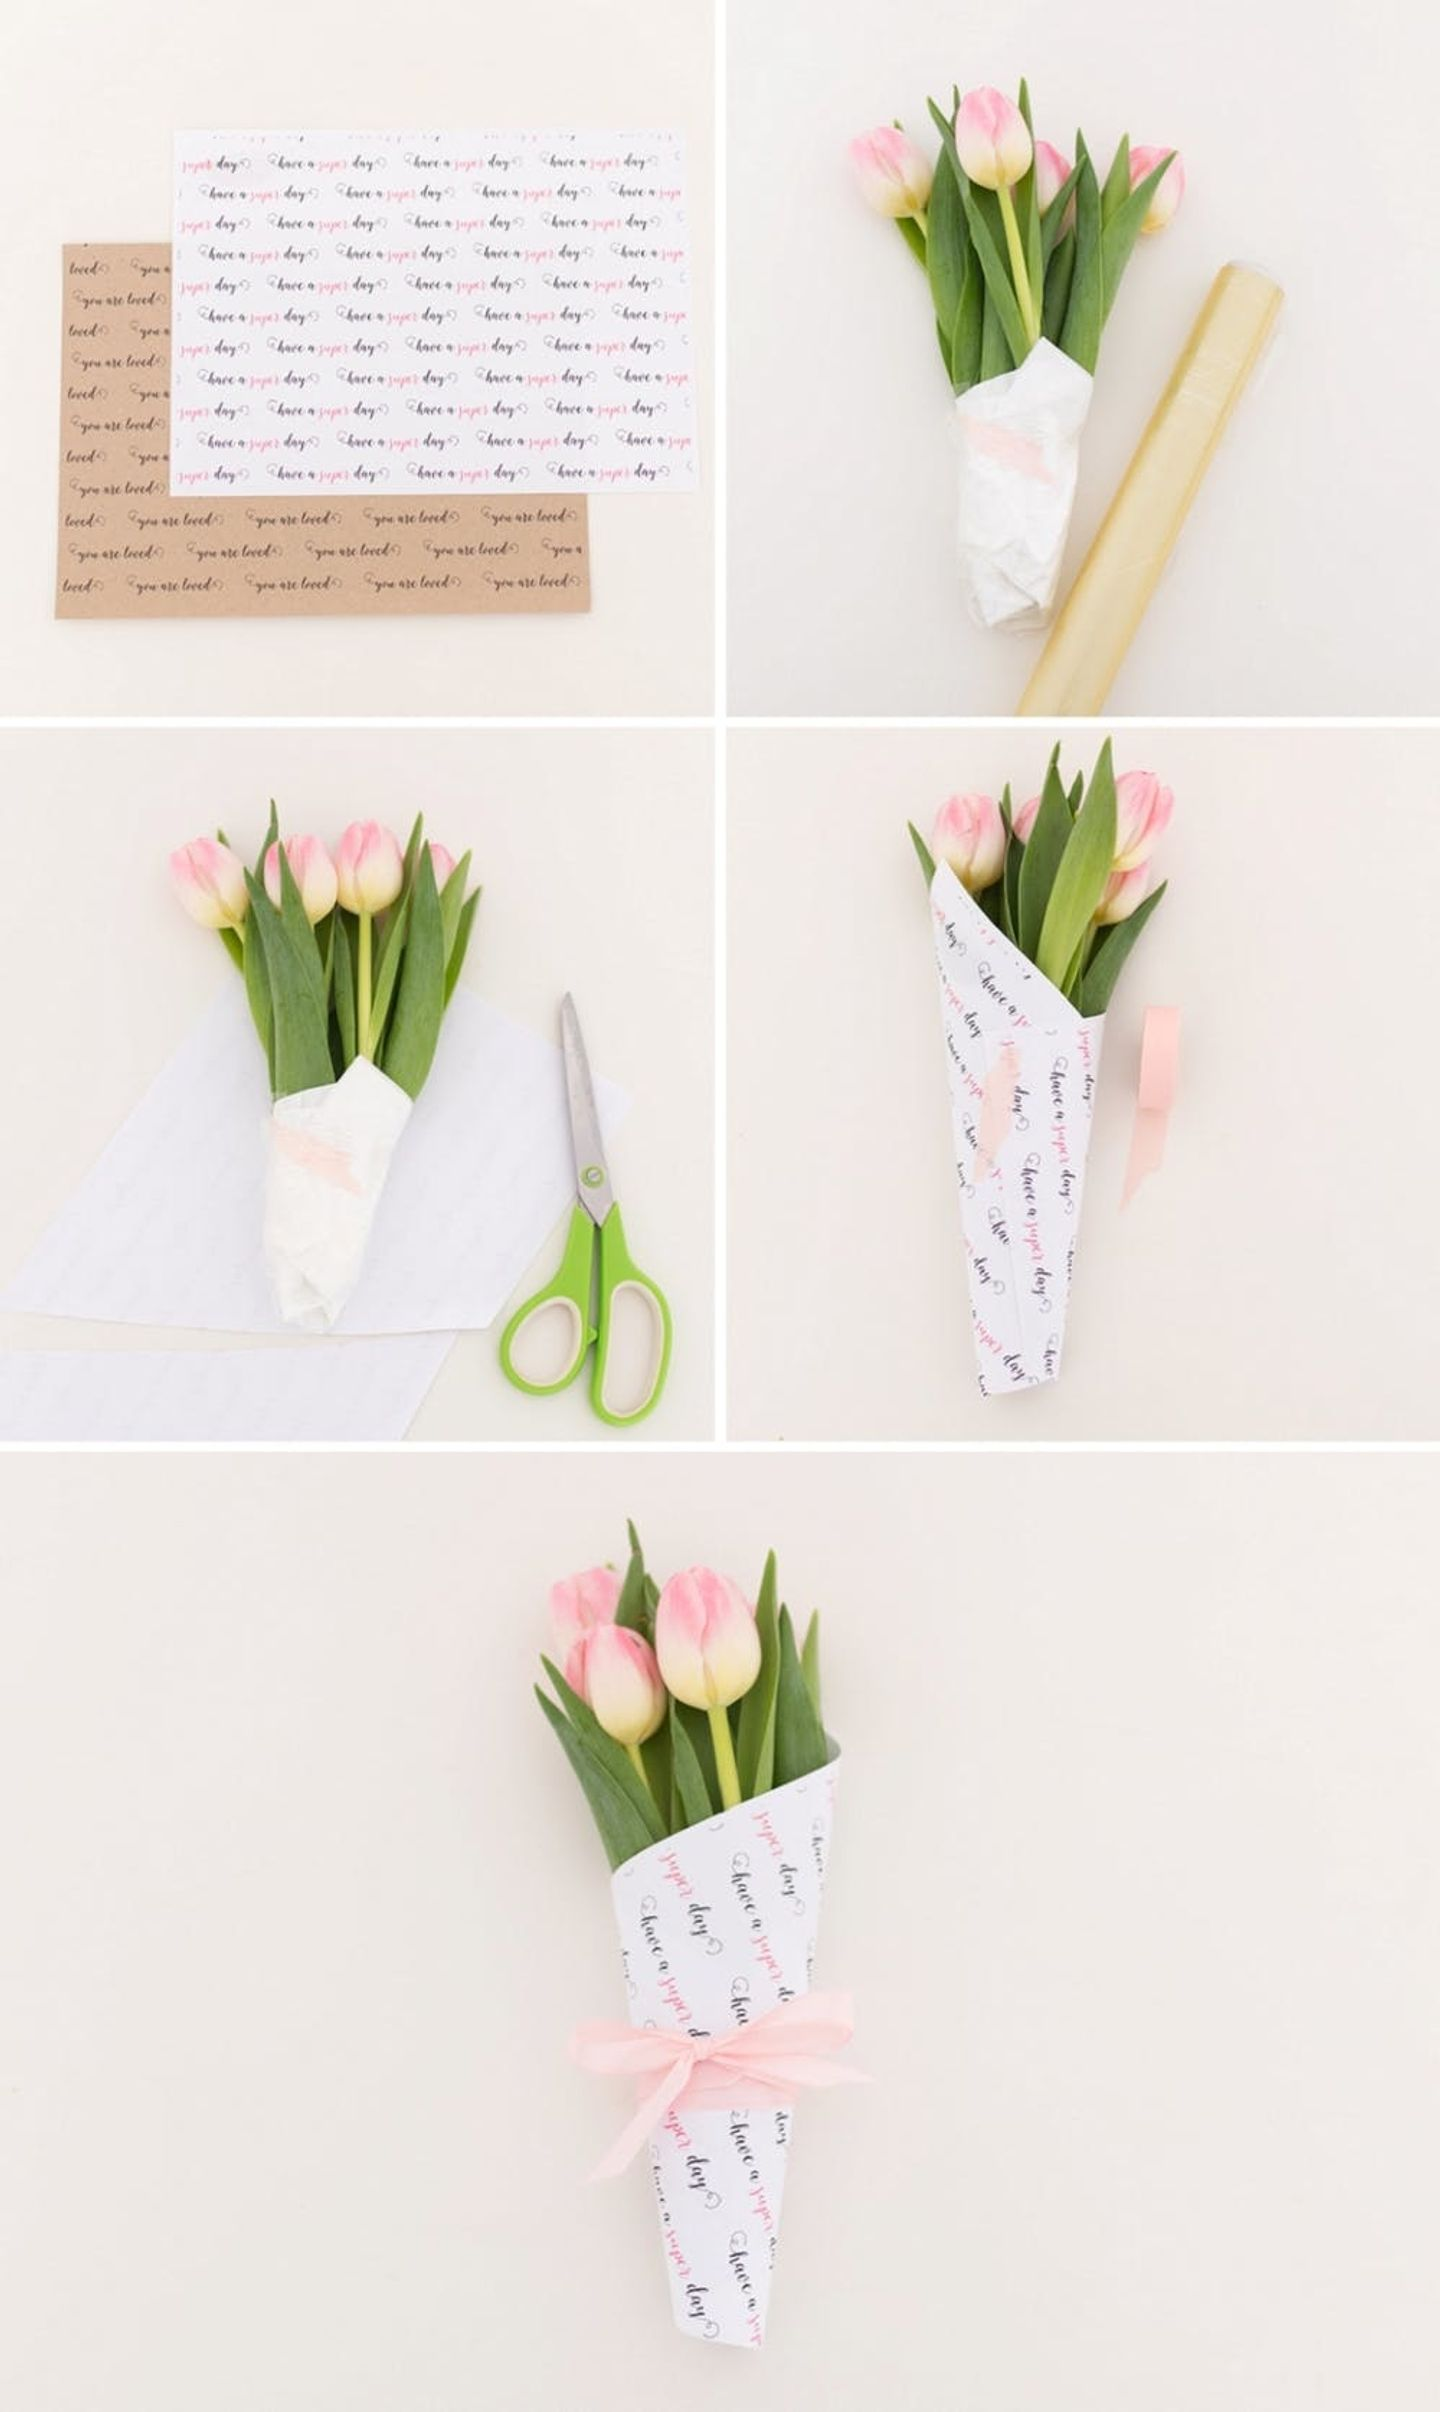 DIY Some Flower Bouquets for Random Acts of Kindness Day